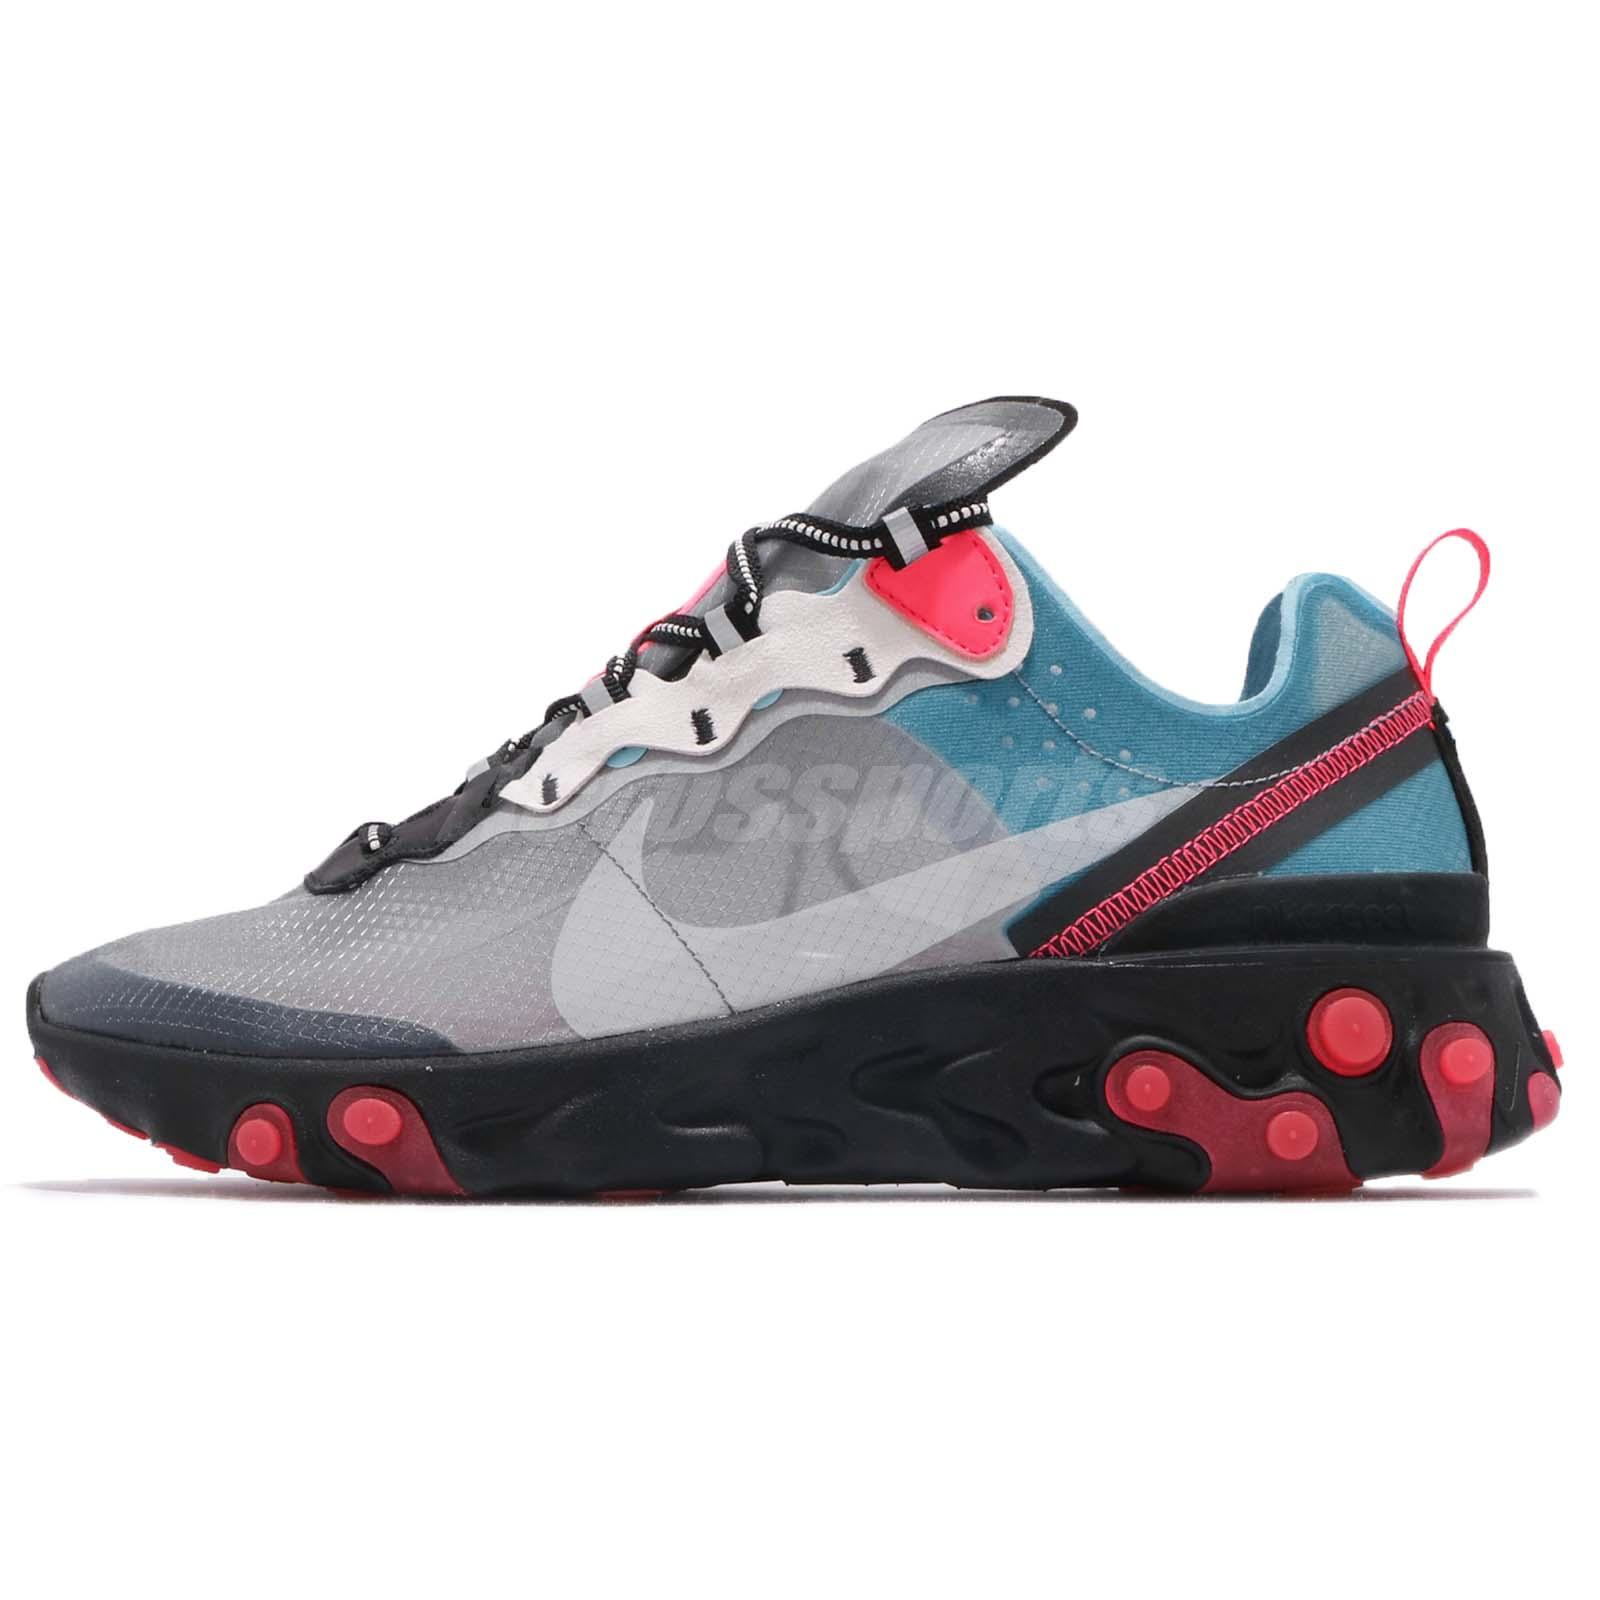 reputable site 51f20 6107c Nike React Element 87 Blue Chill Solar Red Grey Mens Running Shoes AQ1090- 006